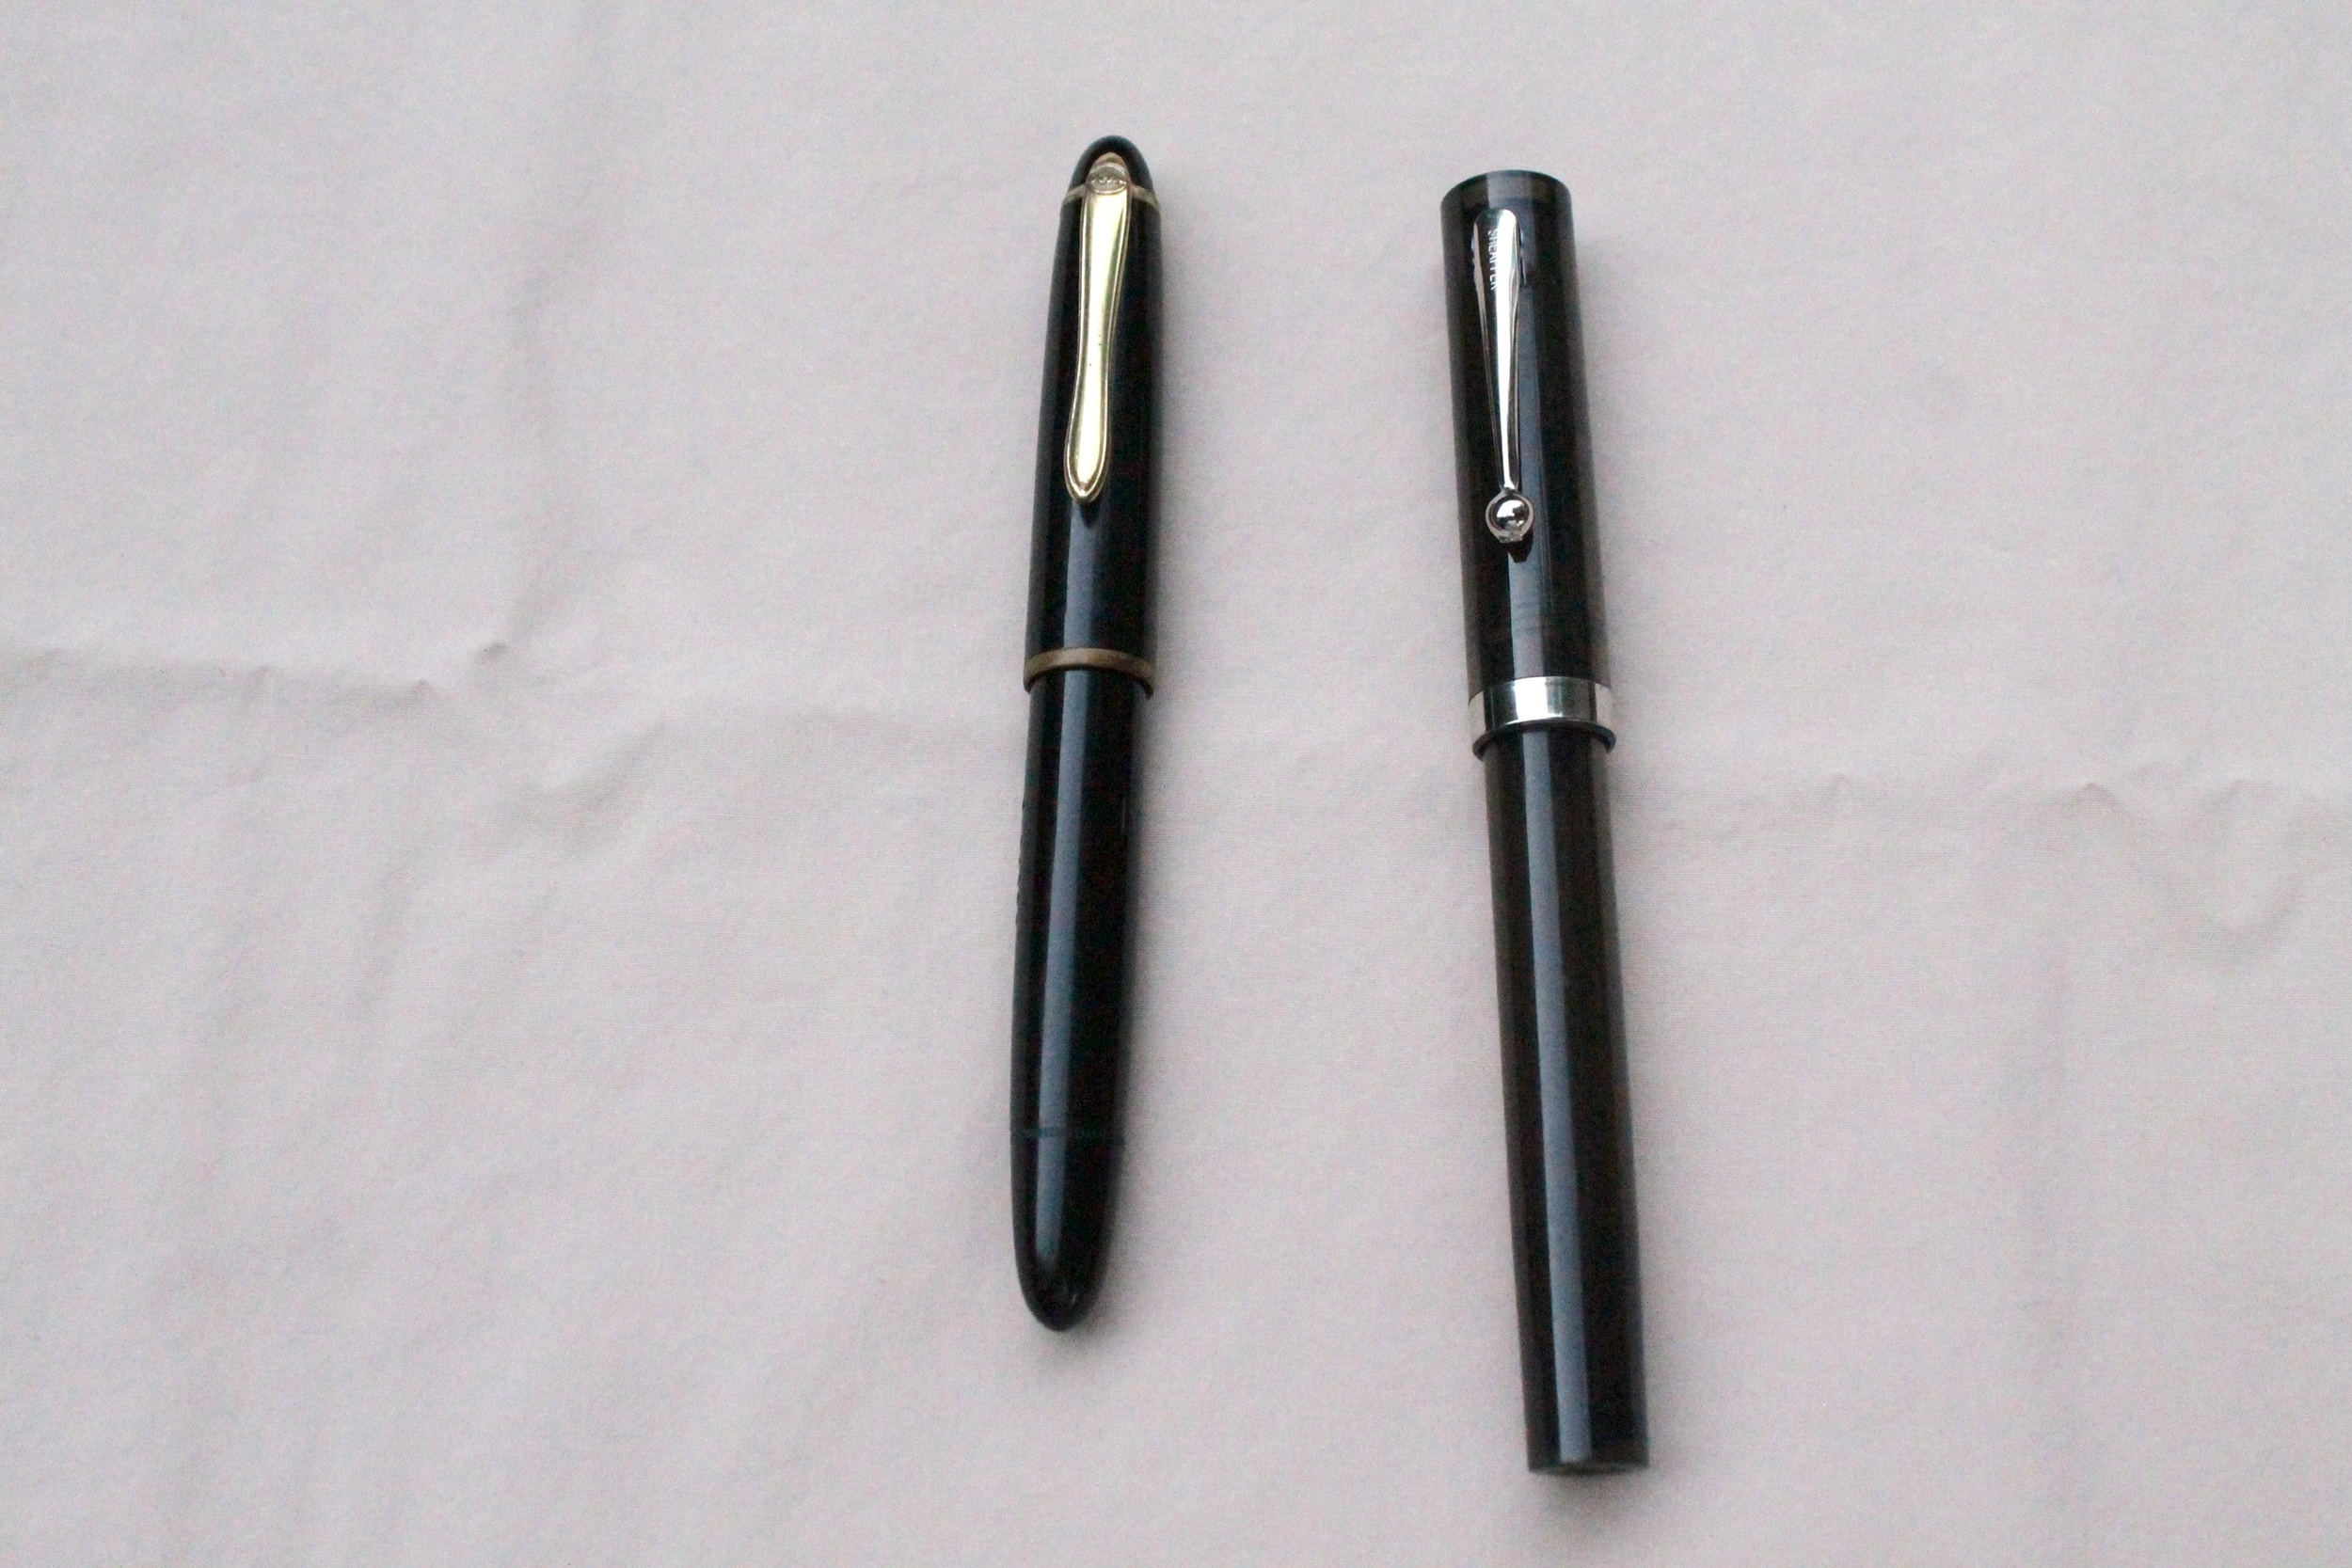 Geha (right) Sheaffer (left)